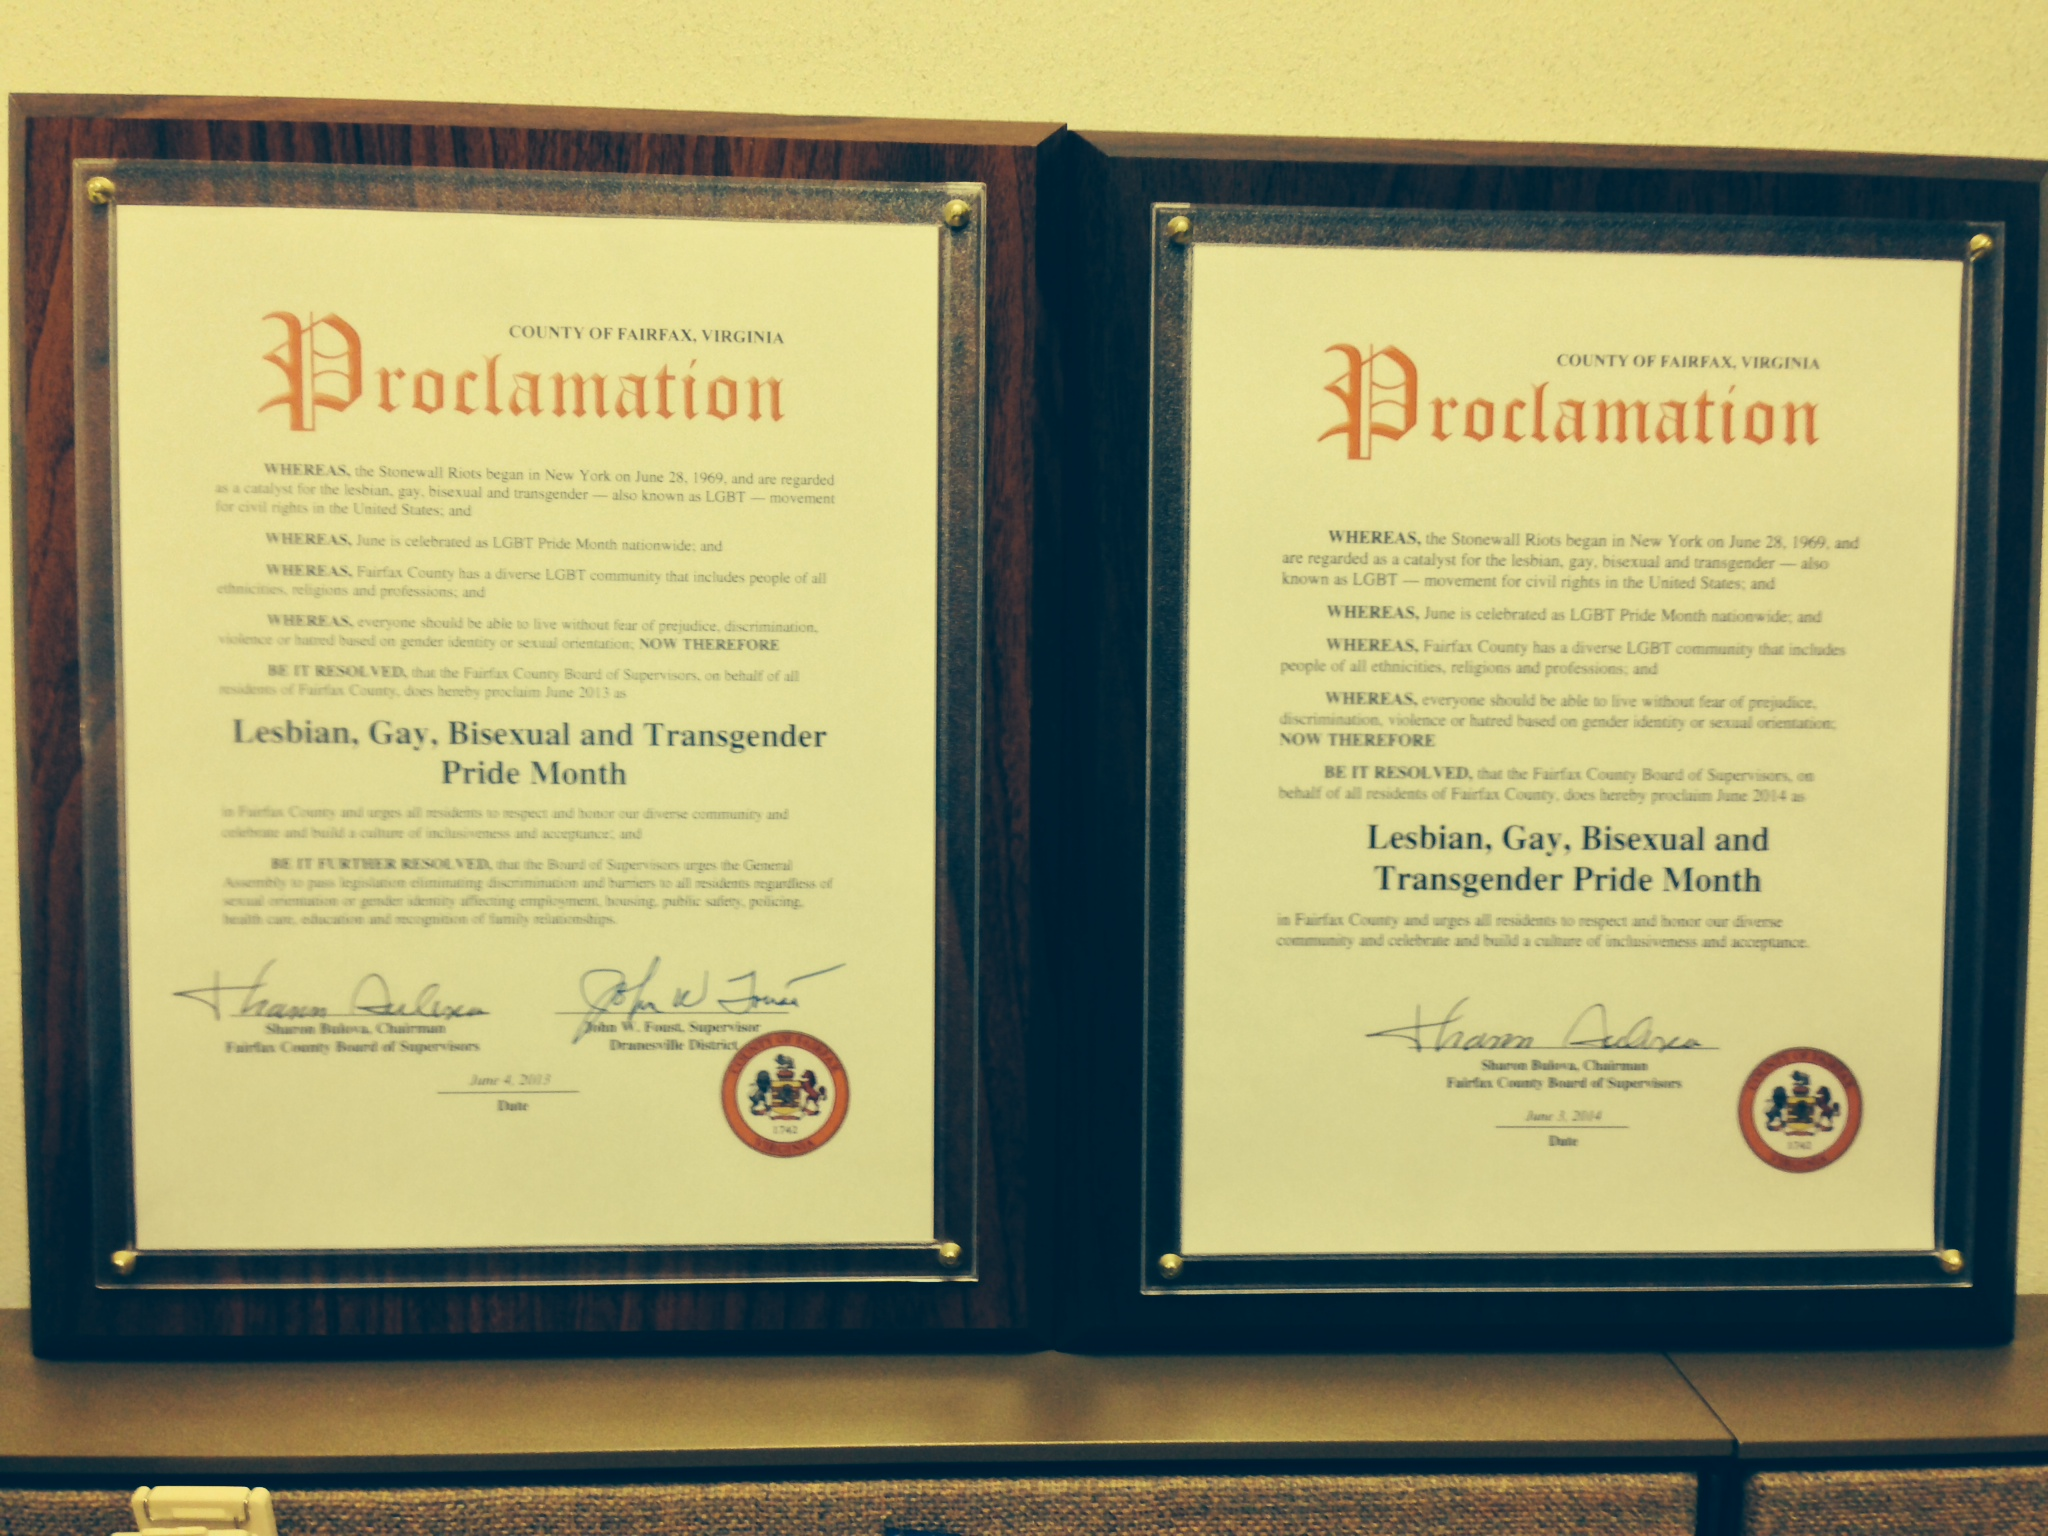 2013 and 2014 Proclamations designating June as LGBT Pride Month in Fairfax County